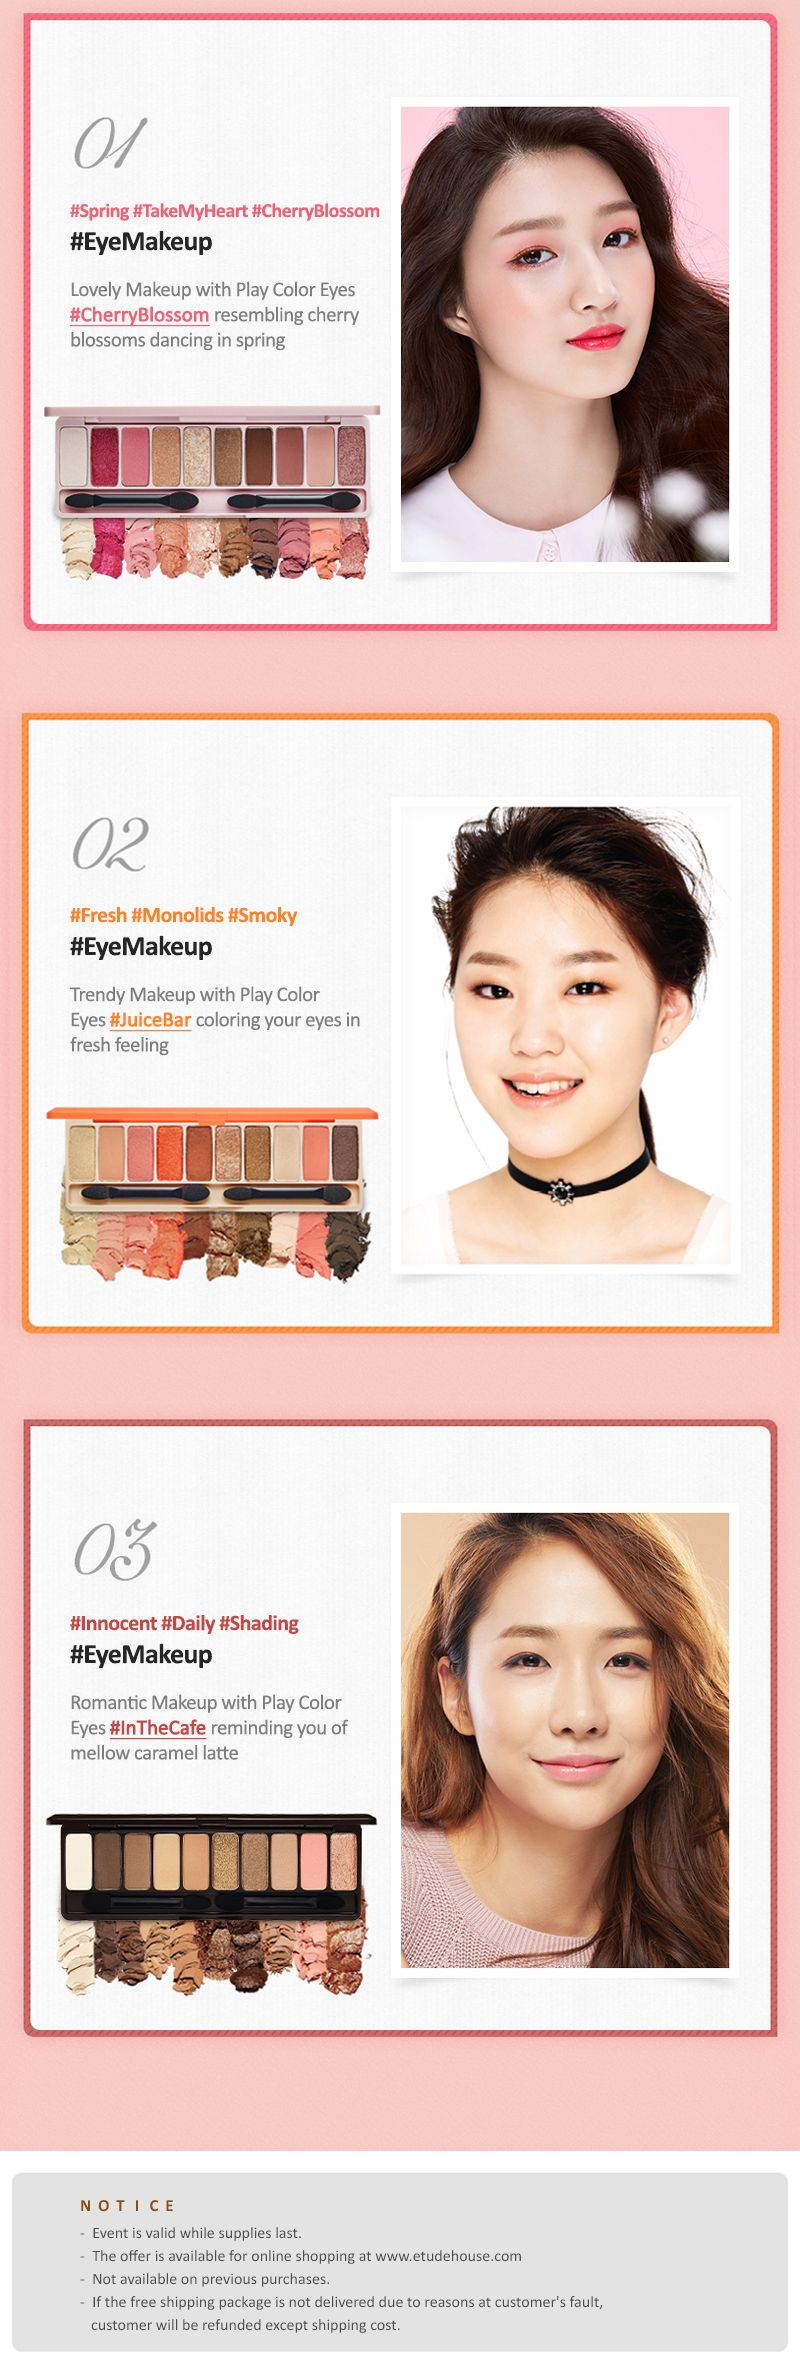 Etude house need this soko glam pinterest etude house house etude house need this soko glam pinterest etude house house and makeup baditri Gallery